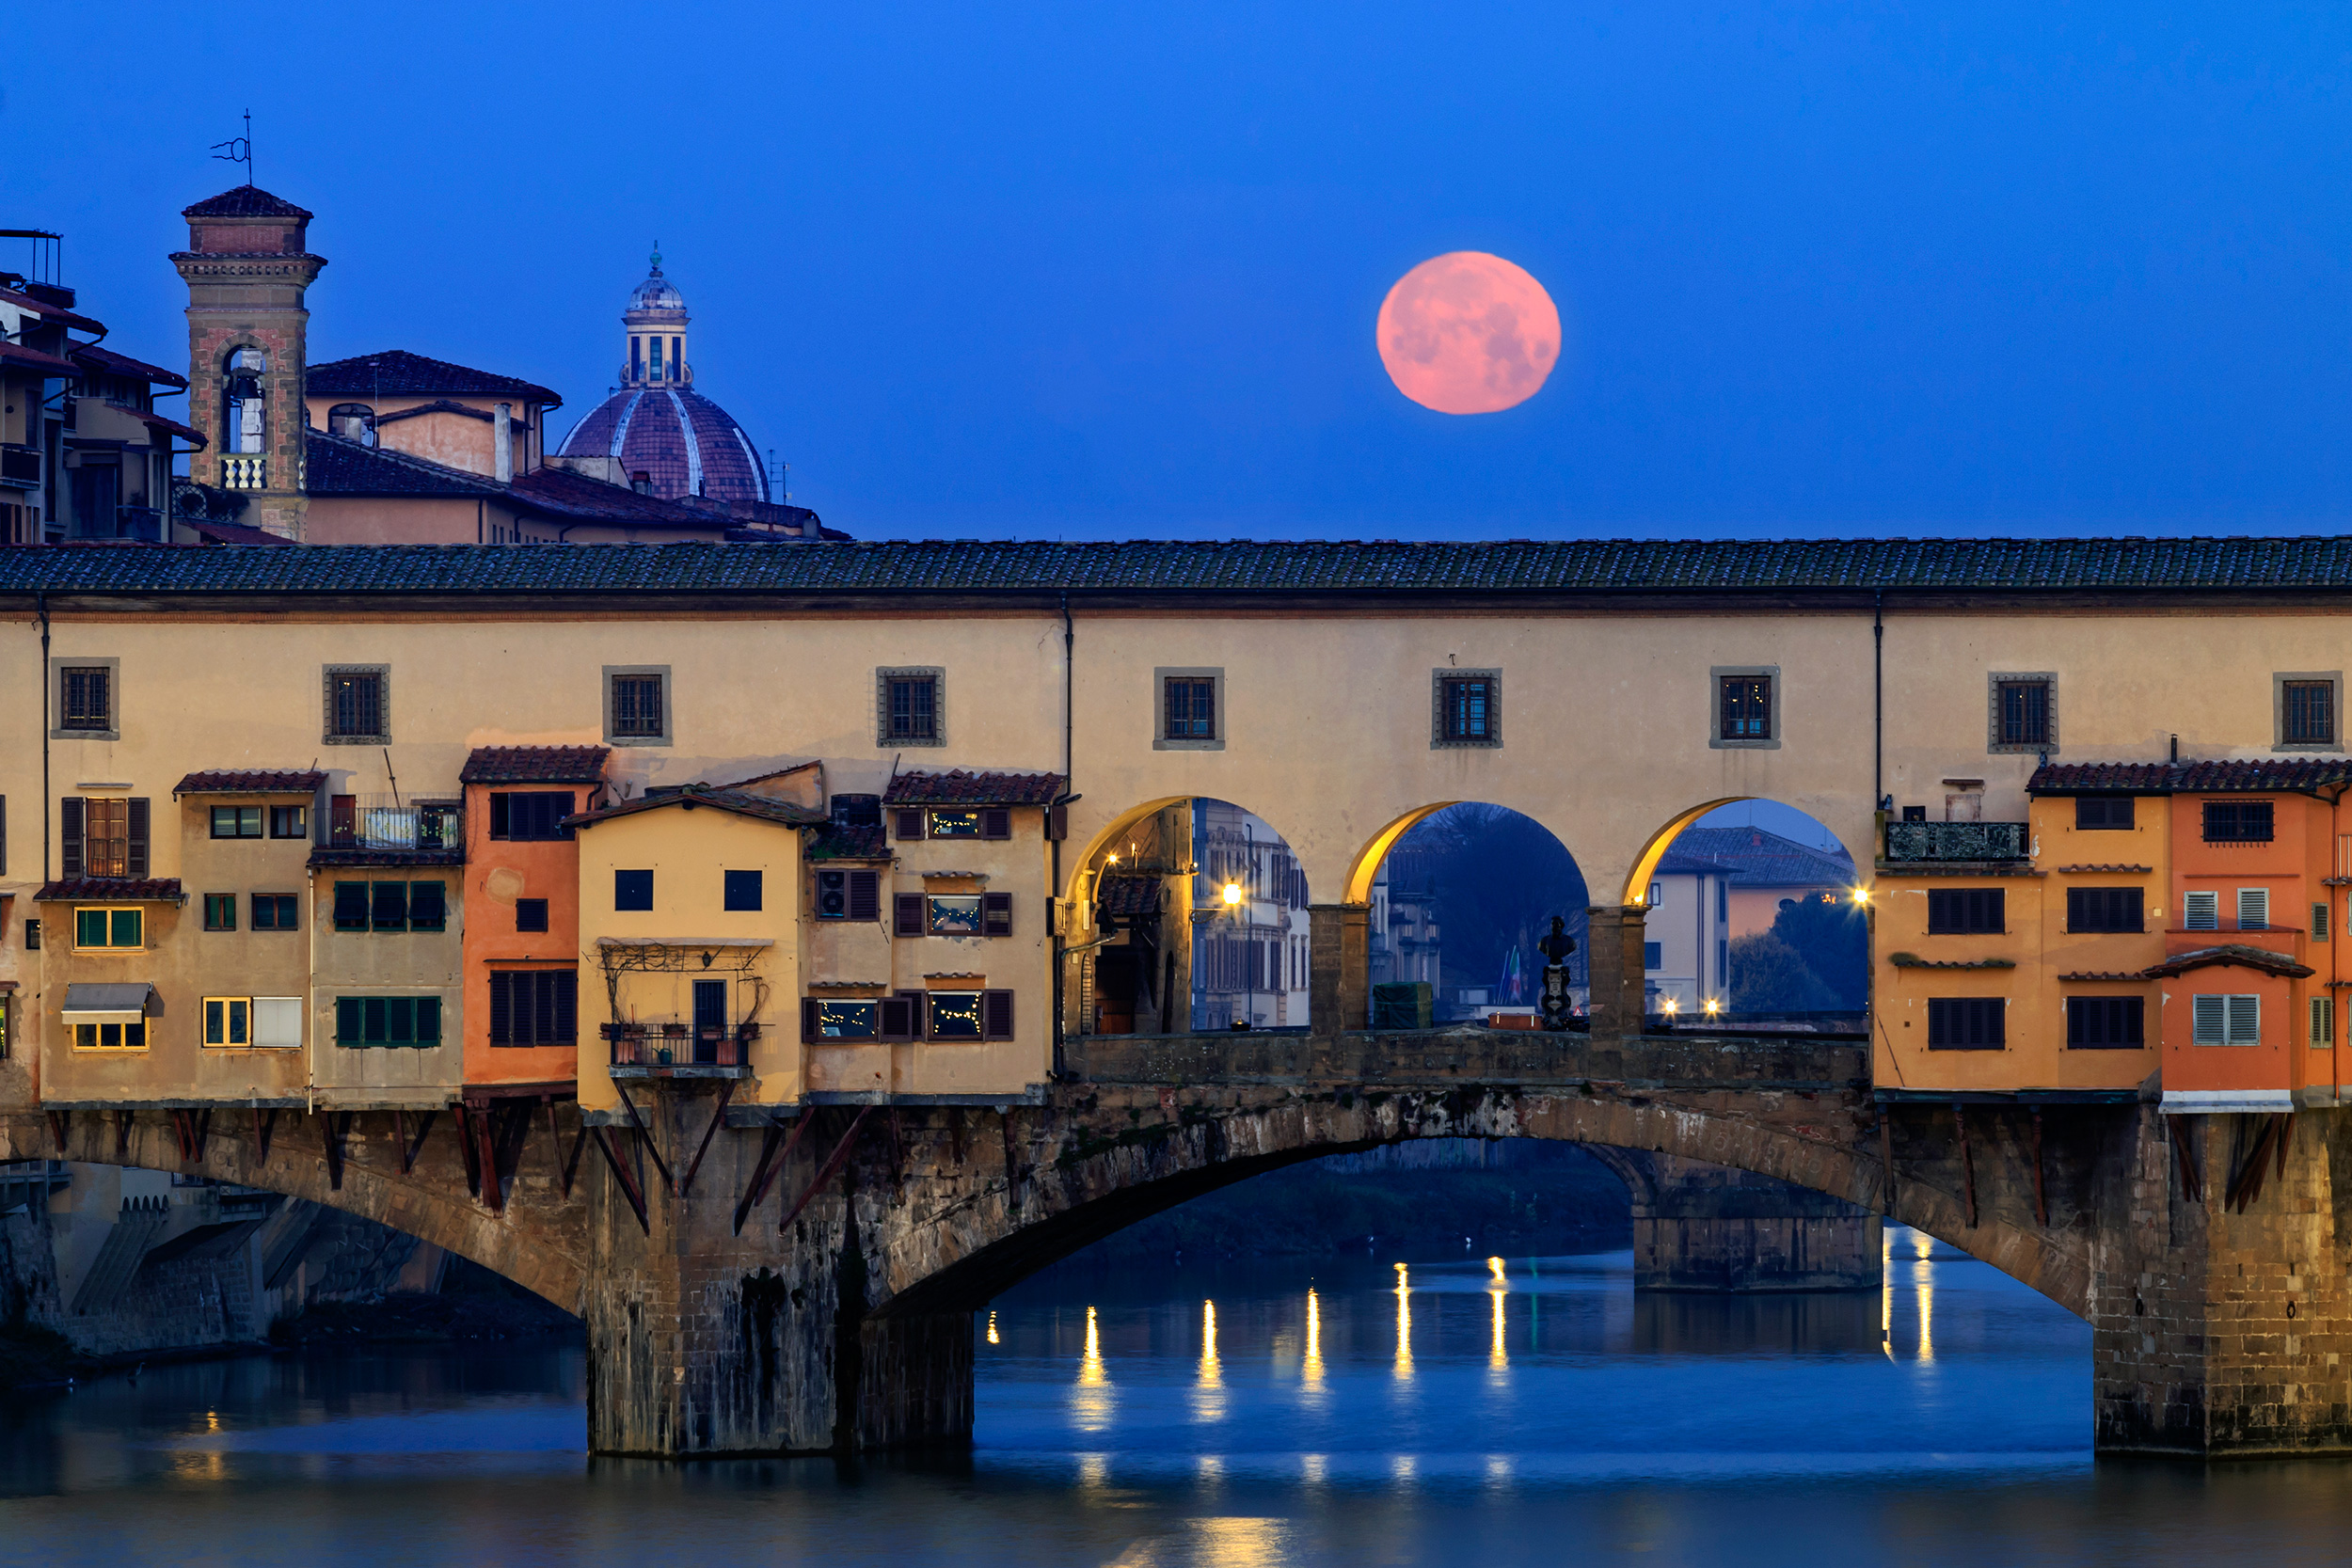 Sunrise from Ponte alle Grazie in Florence, Italy, with the full moon setting behind Ponte Vecchio